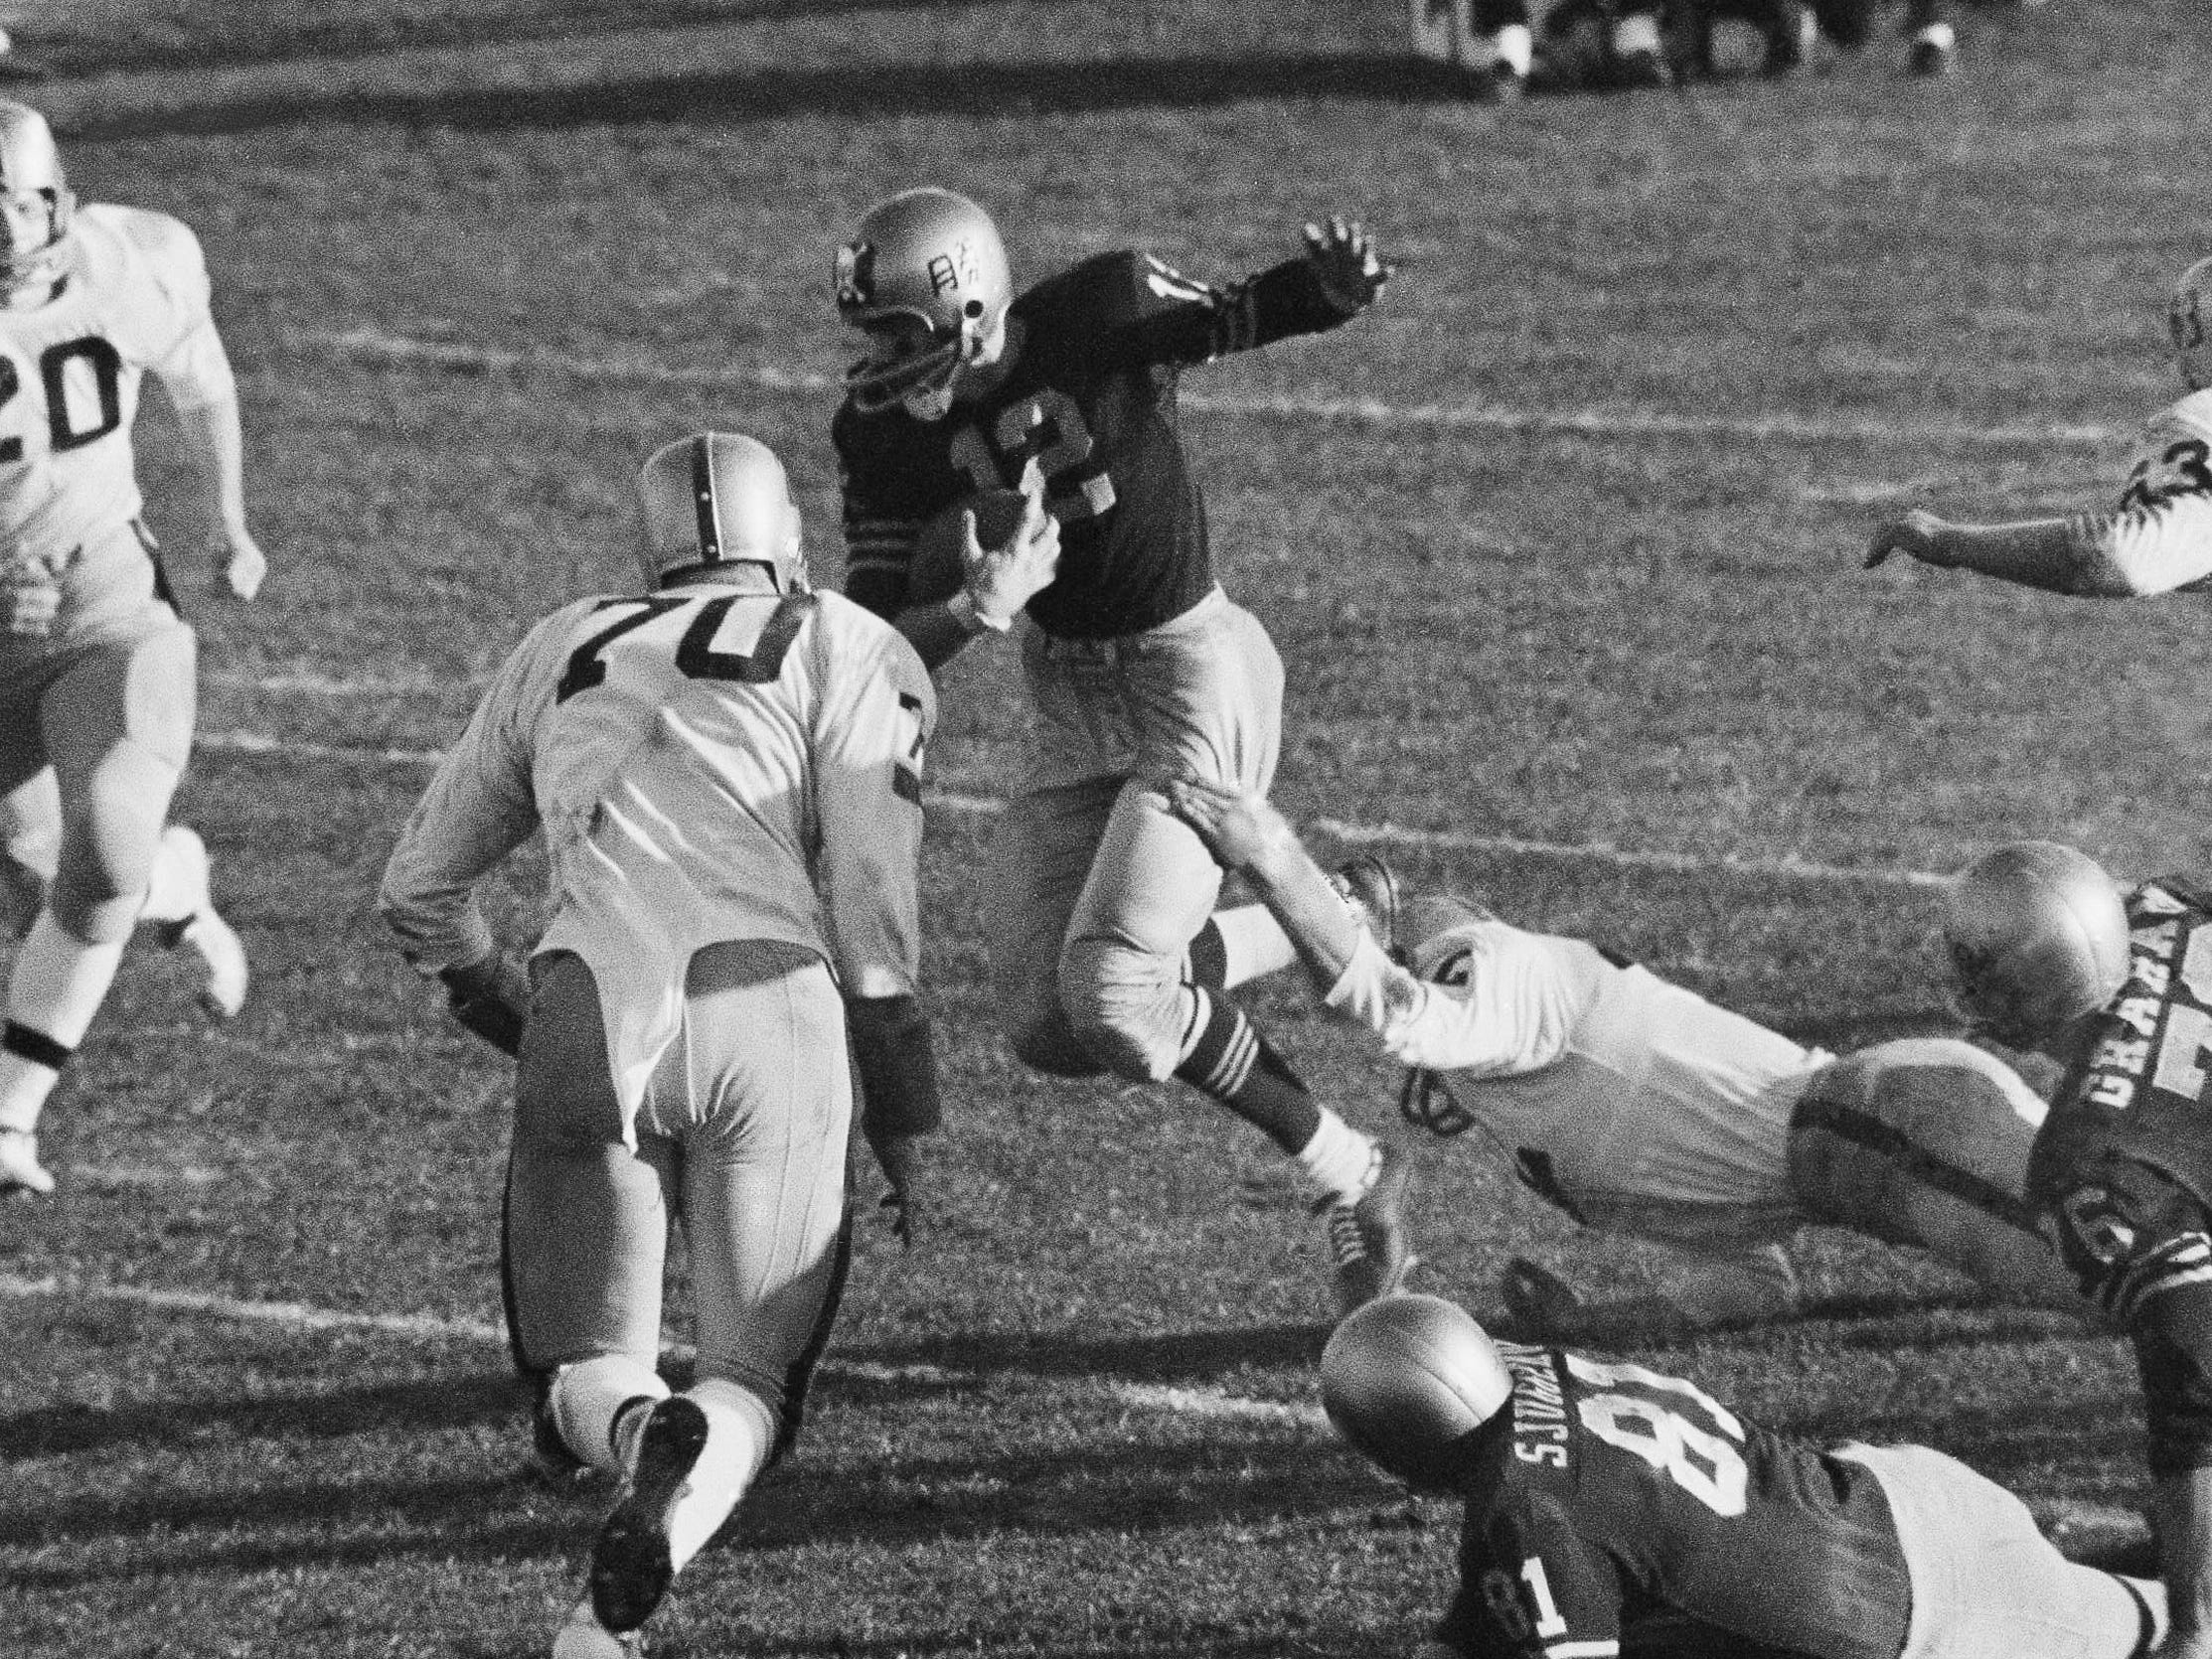 Army-Navy game marked innovation of instant replay 55 years ago